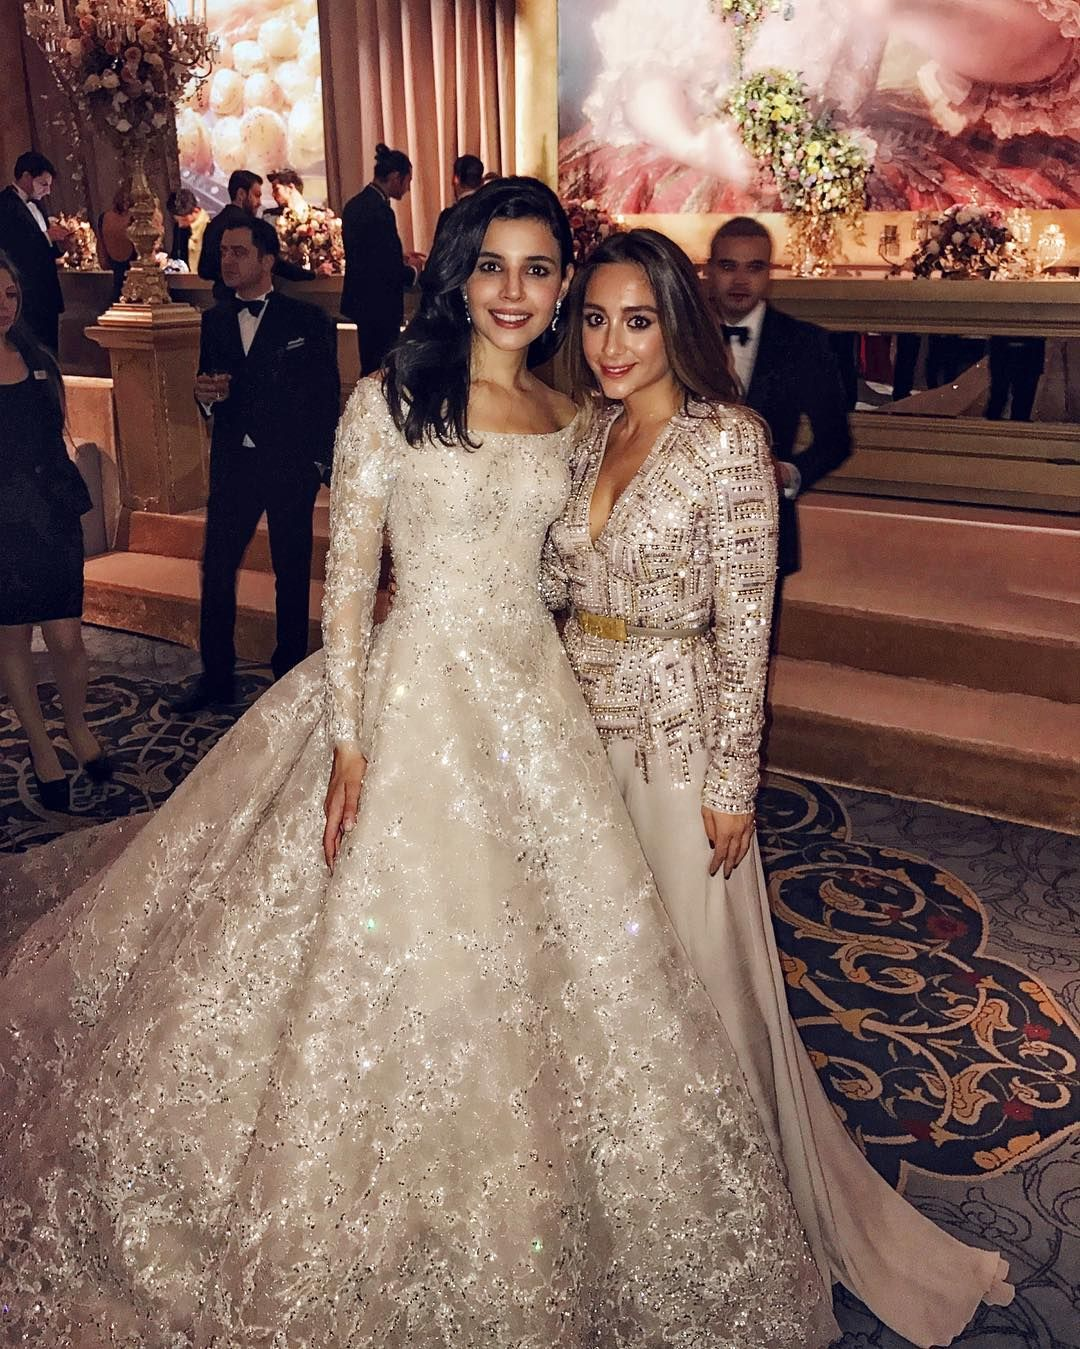 Wedding Gown Elie Saab: This Turkish Bride's Wedding Dress Looks Like A Work Of